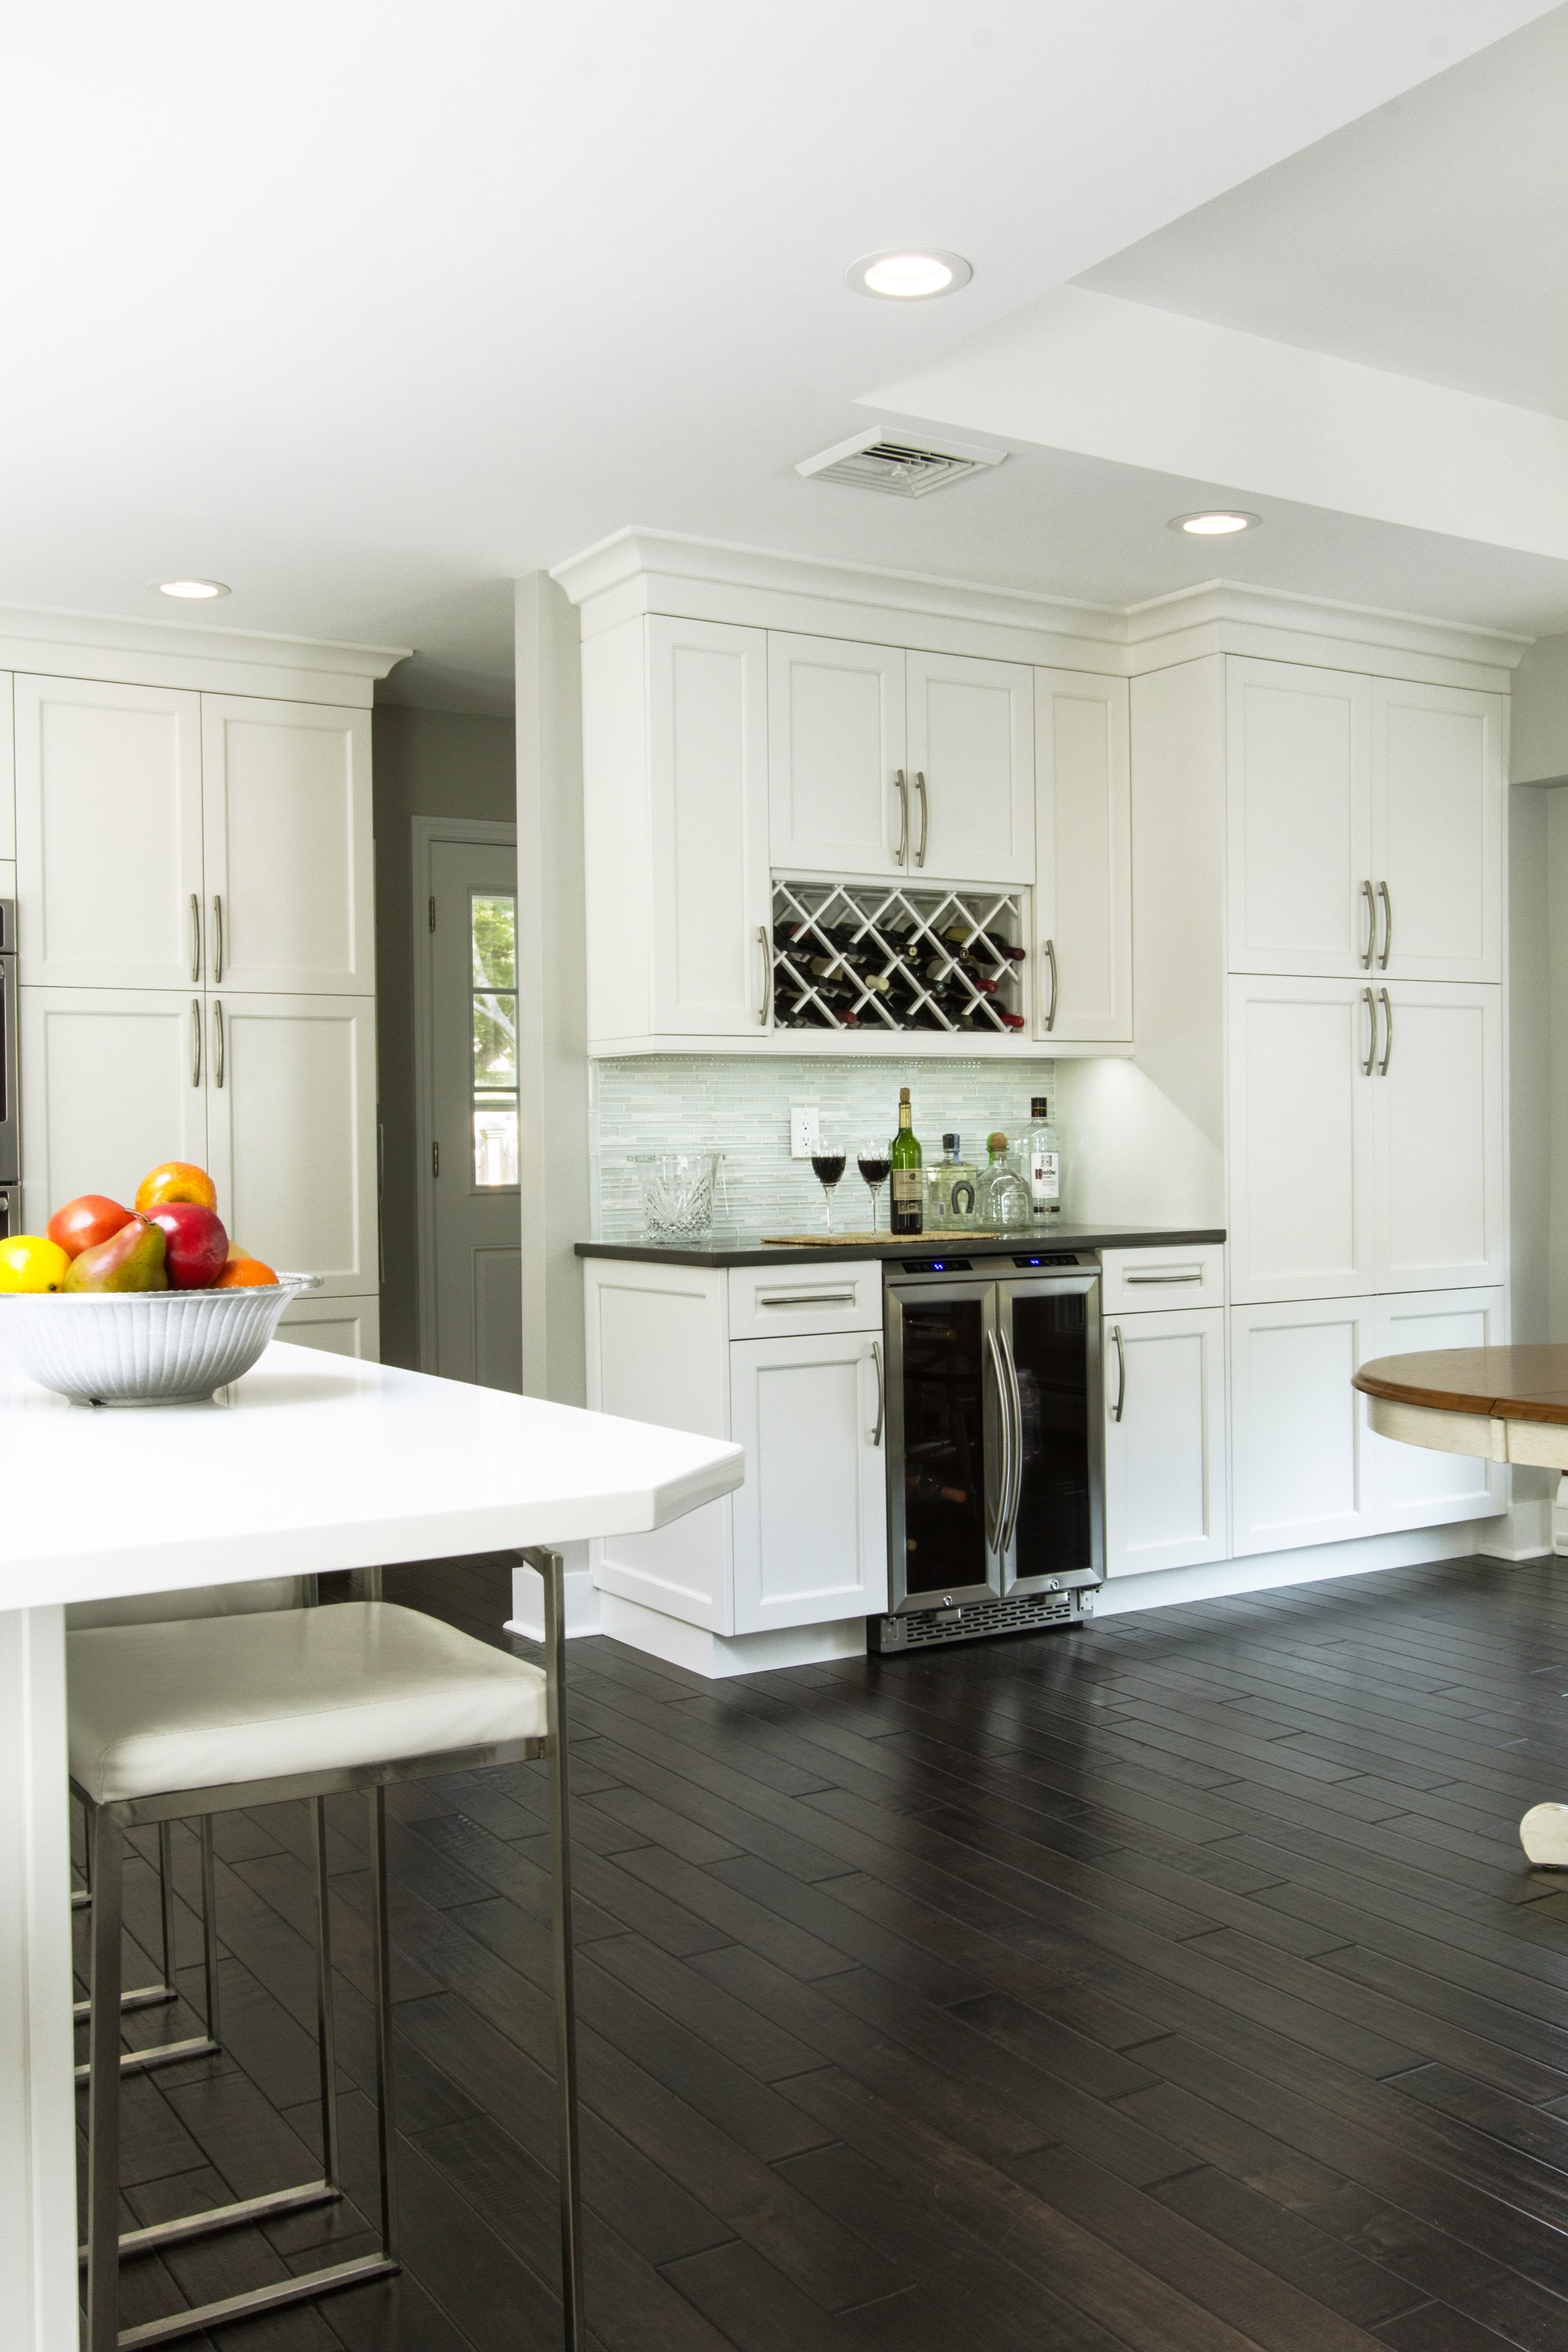 Transitional style kitchen with high ceiling